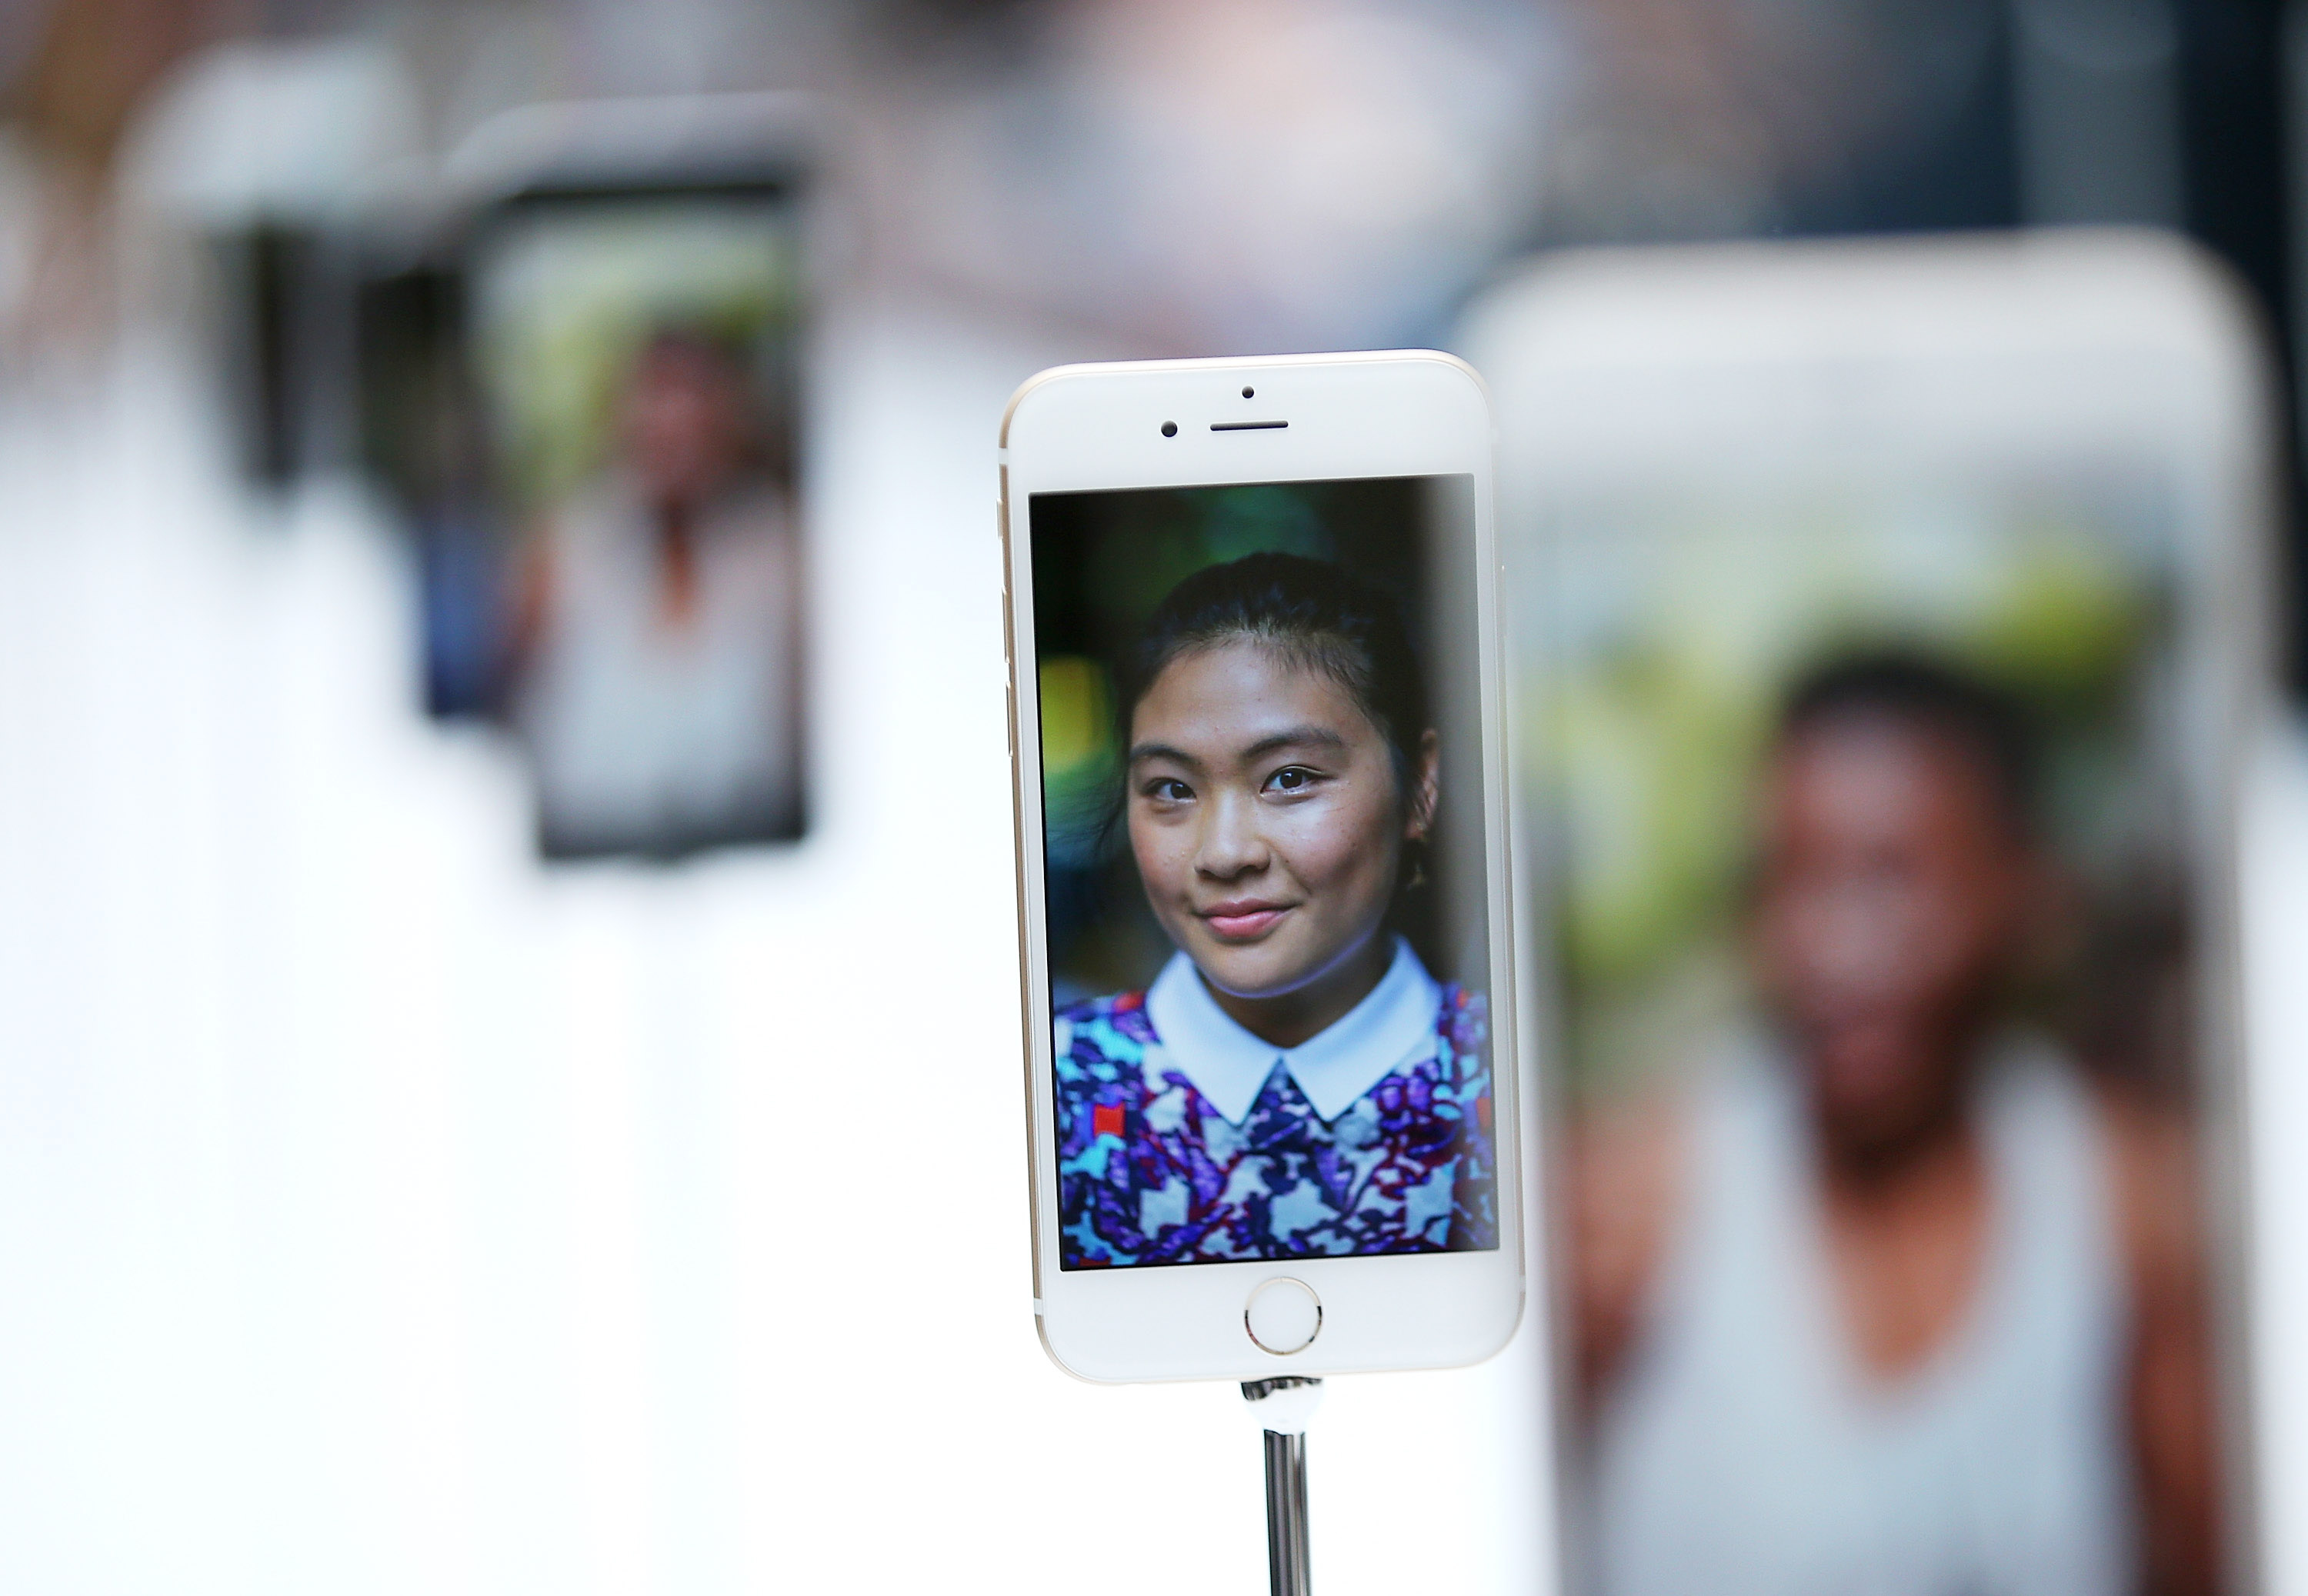 The new iPhone 6 is displayed during an Apple special event.  (Photo by Justin Sullivan/Getty Images)